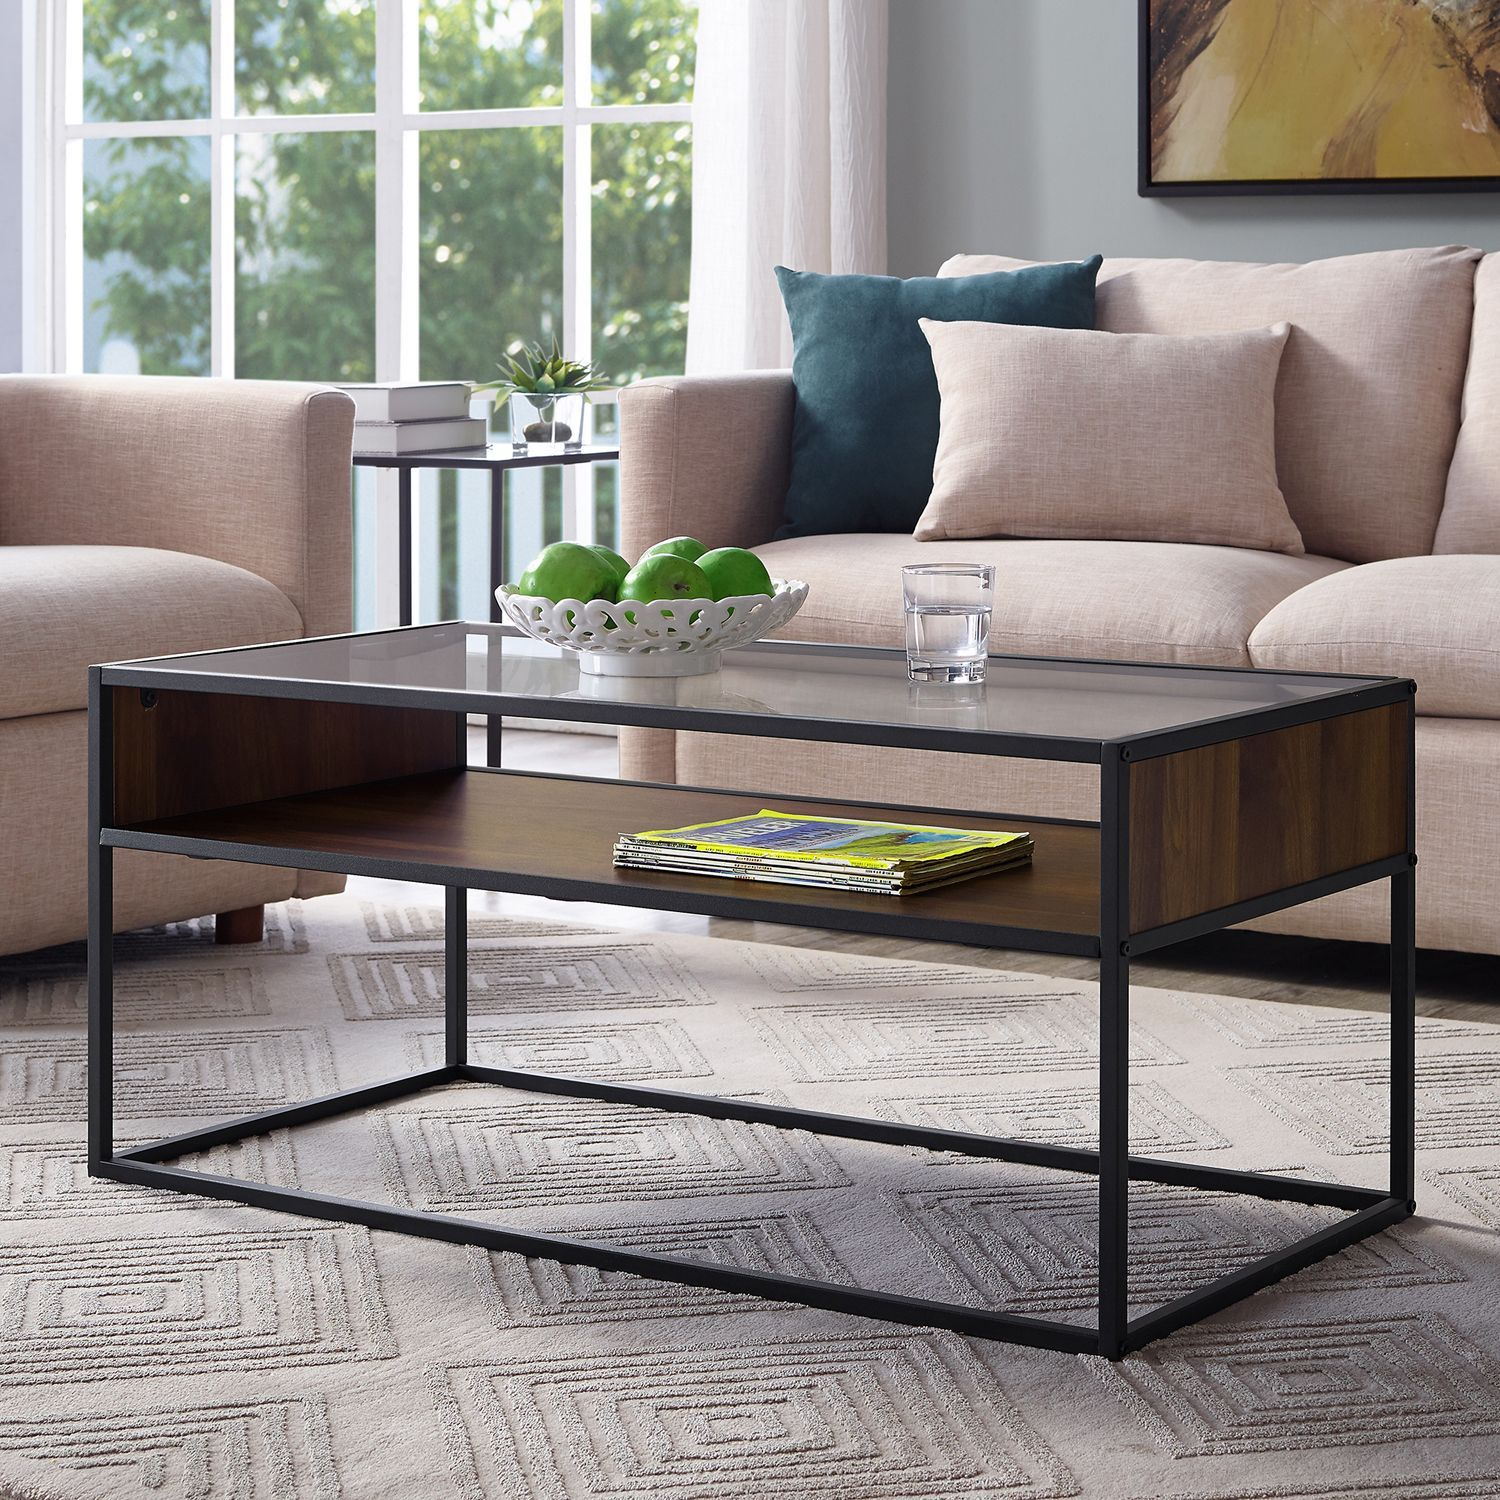 "Glass And Metal Coffee Table With Shelf: 40"" Dark Walnut Metal & Glass Coffee Table With Open Shelf"